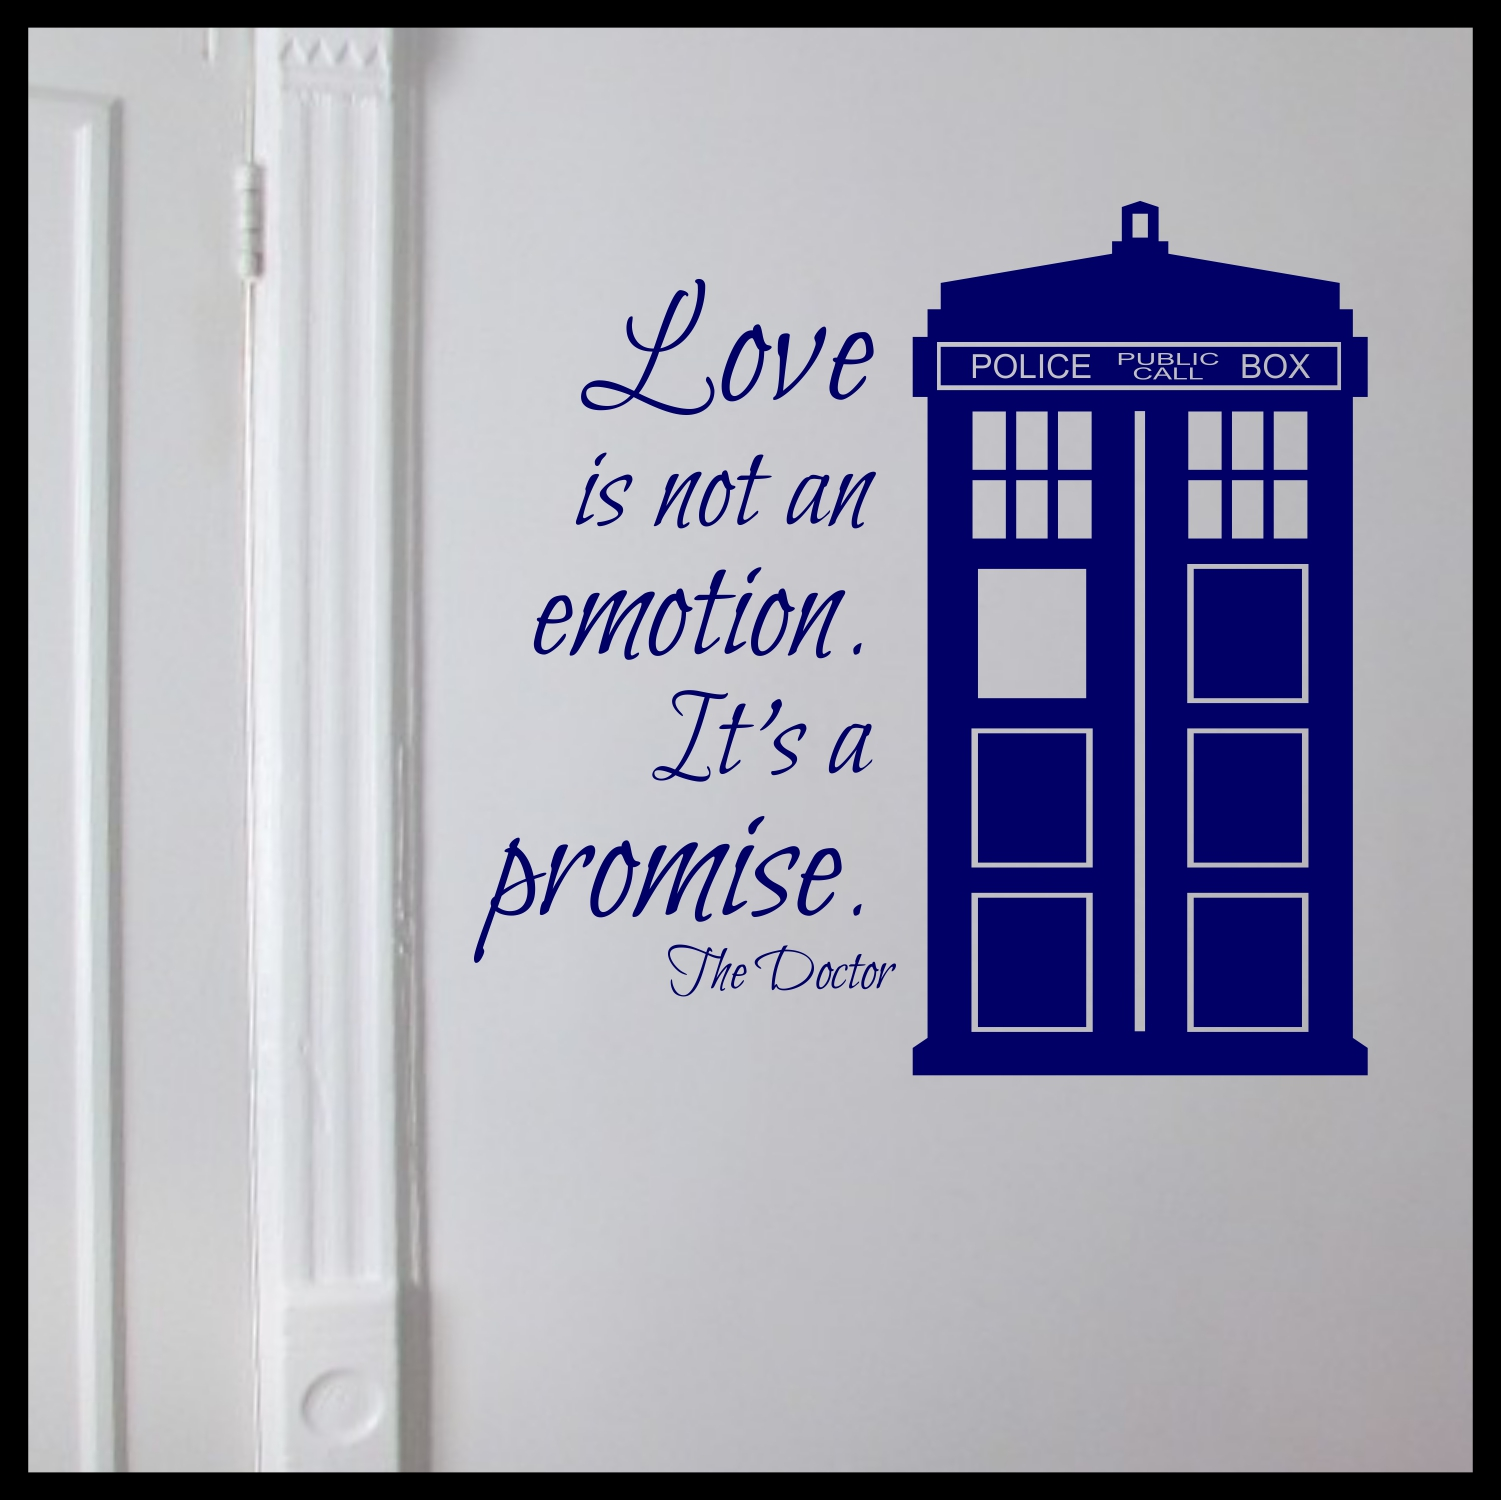 Love Is Not An Emotion Itu0027s A Promise Dr. Who, TARDIS, Vinyl Wall